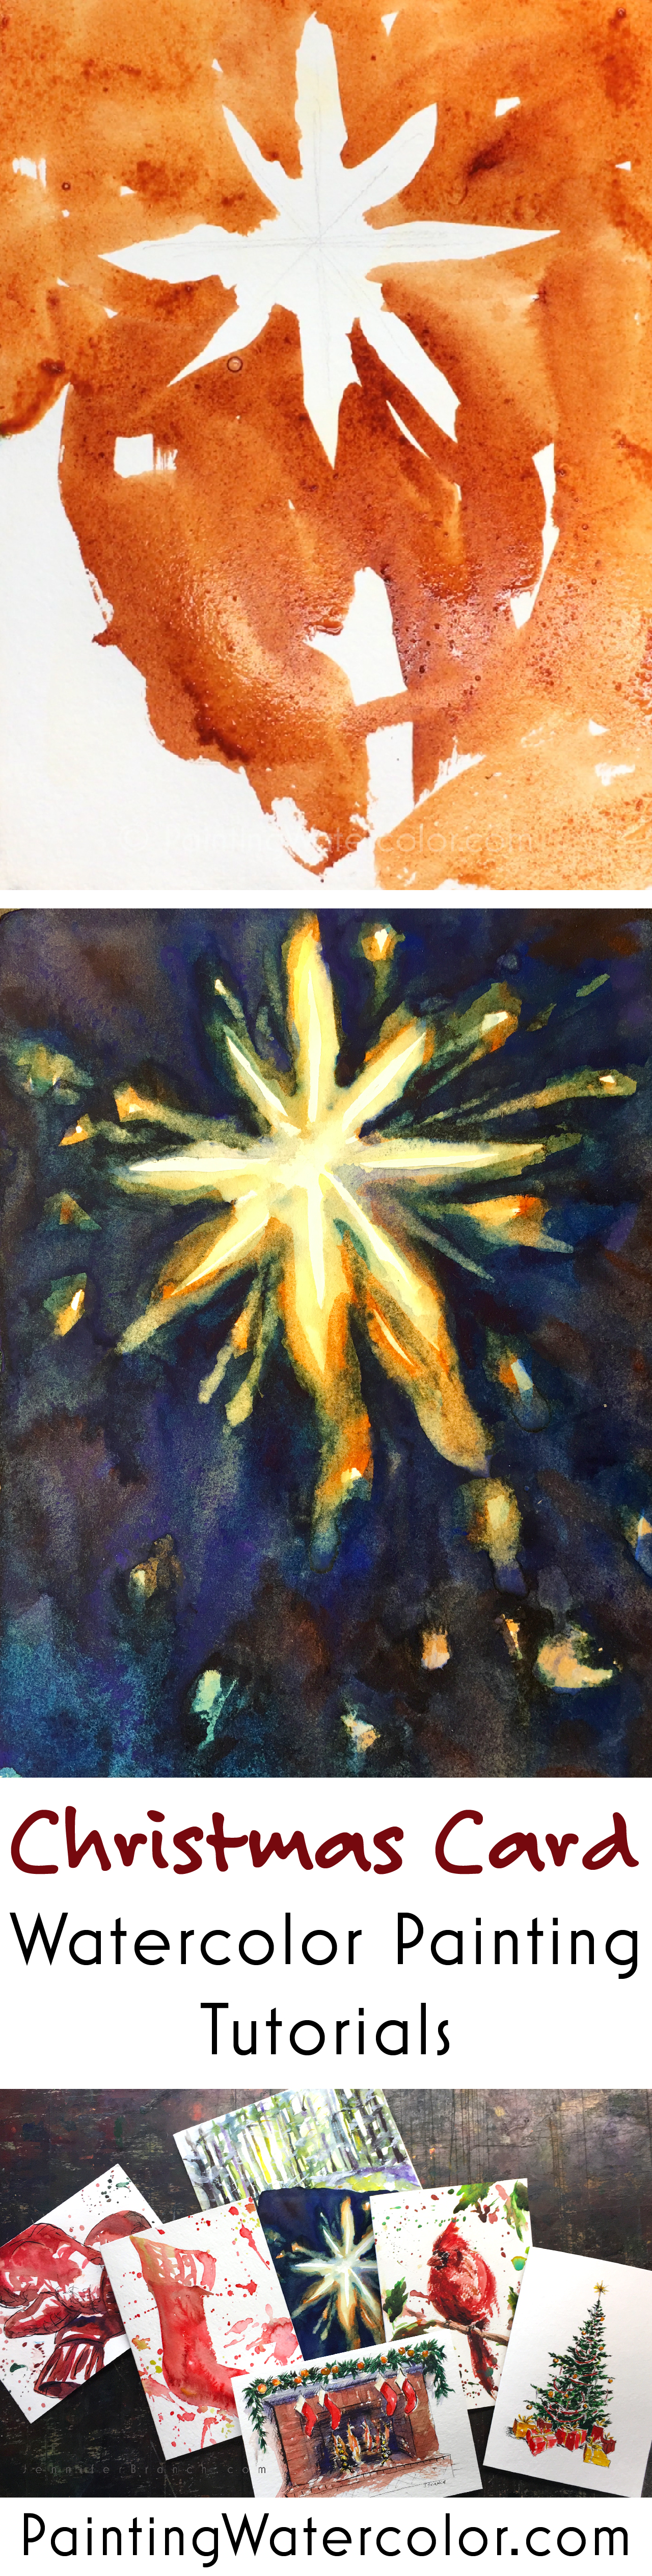 Paint the true meaning of Christmas and the Bethlehem star for your loved ones with this beautiful card.